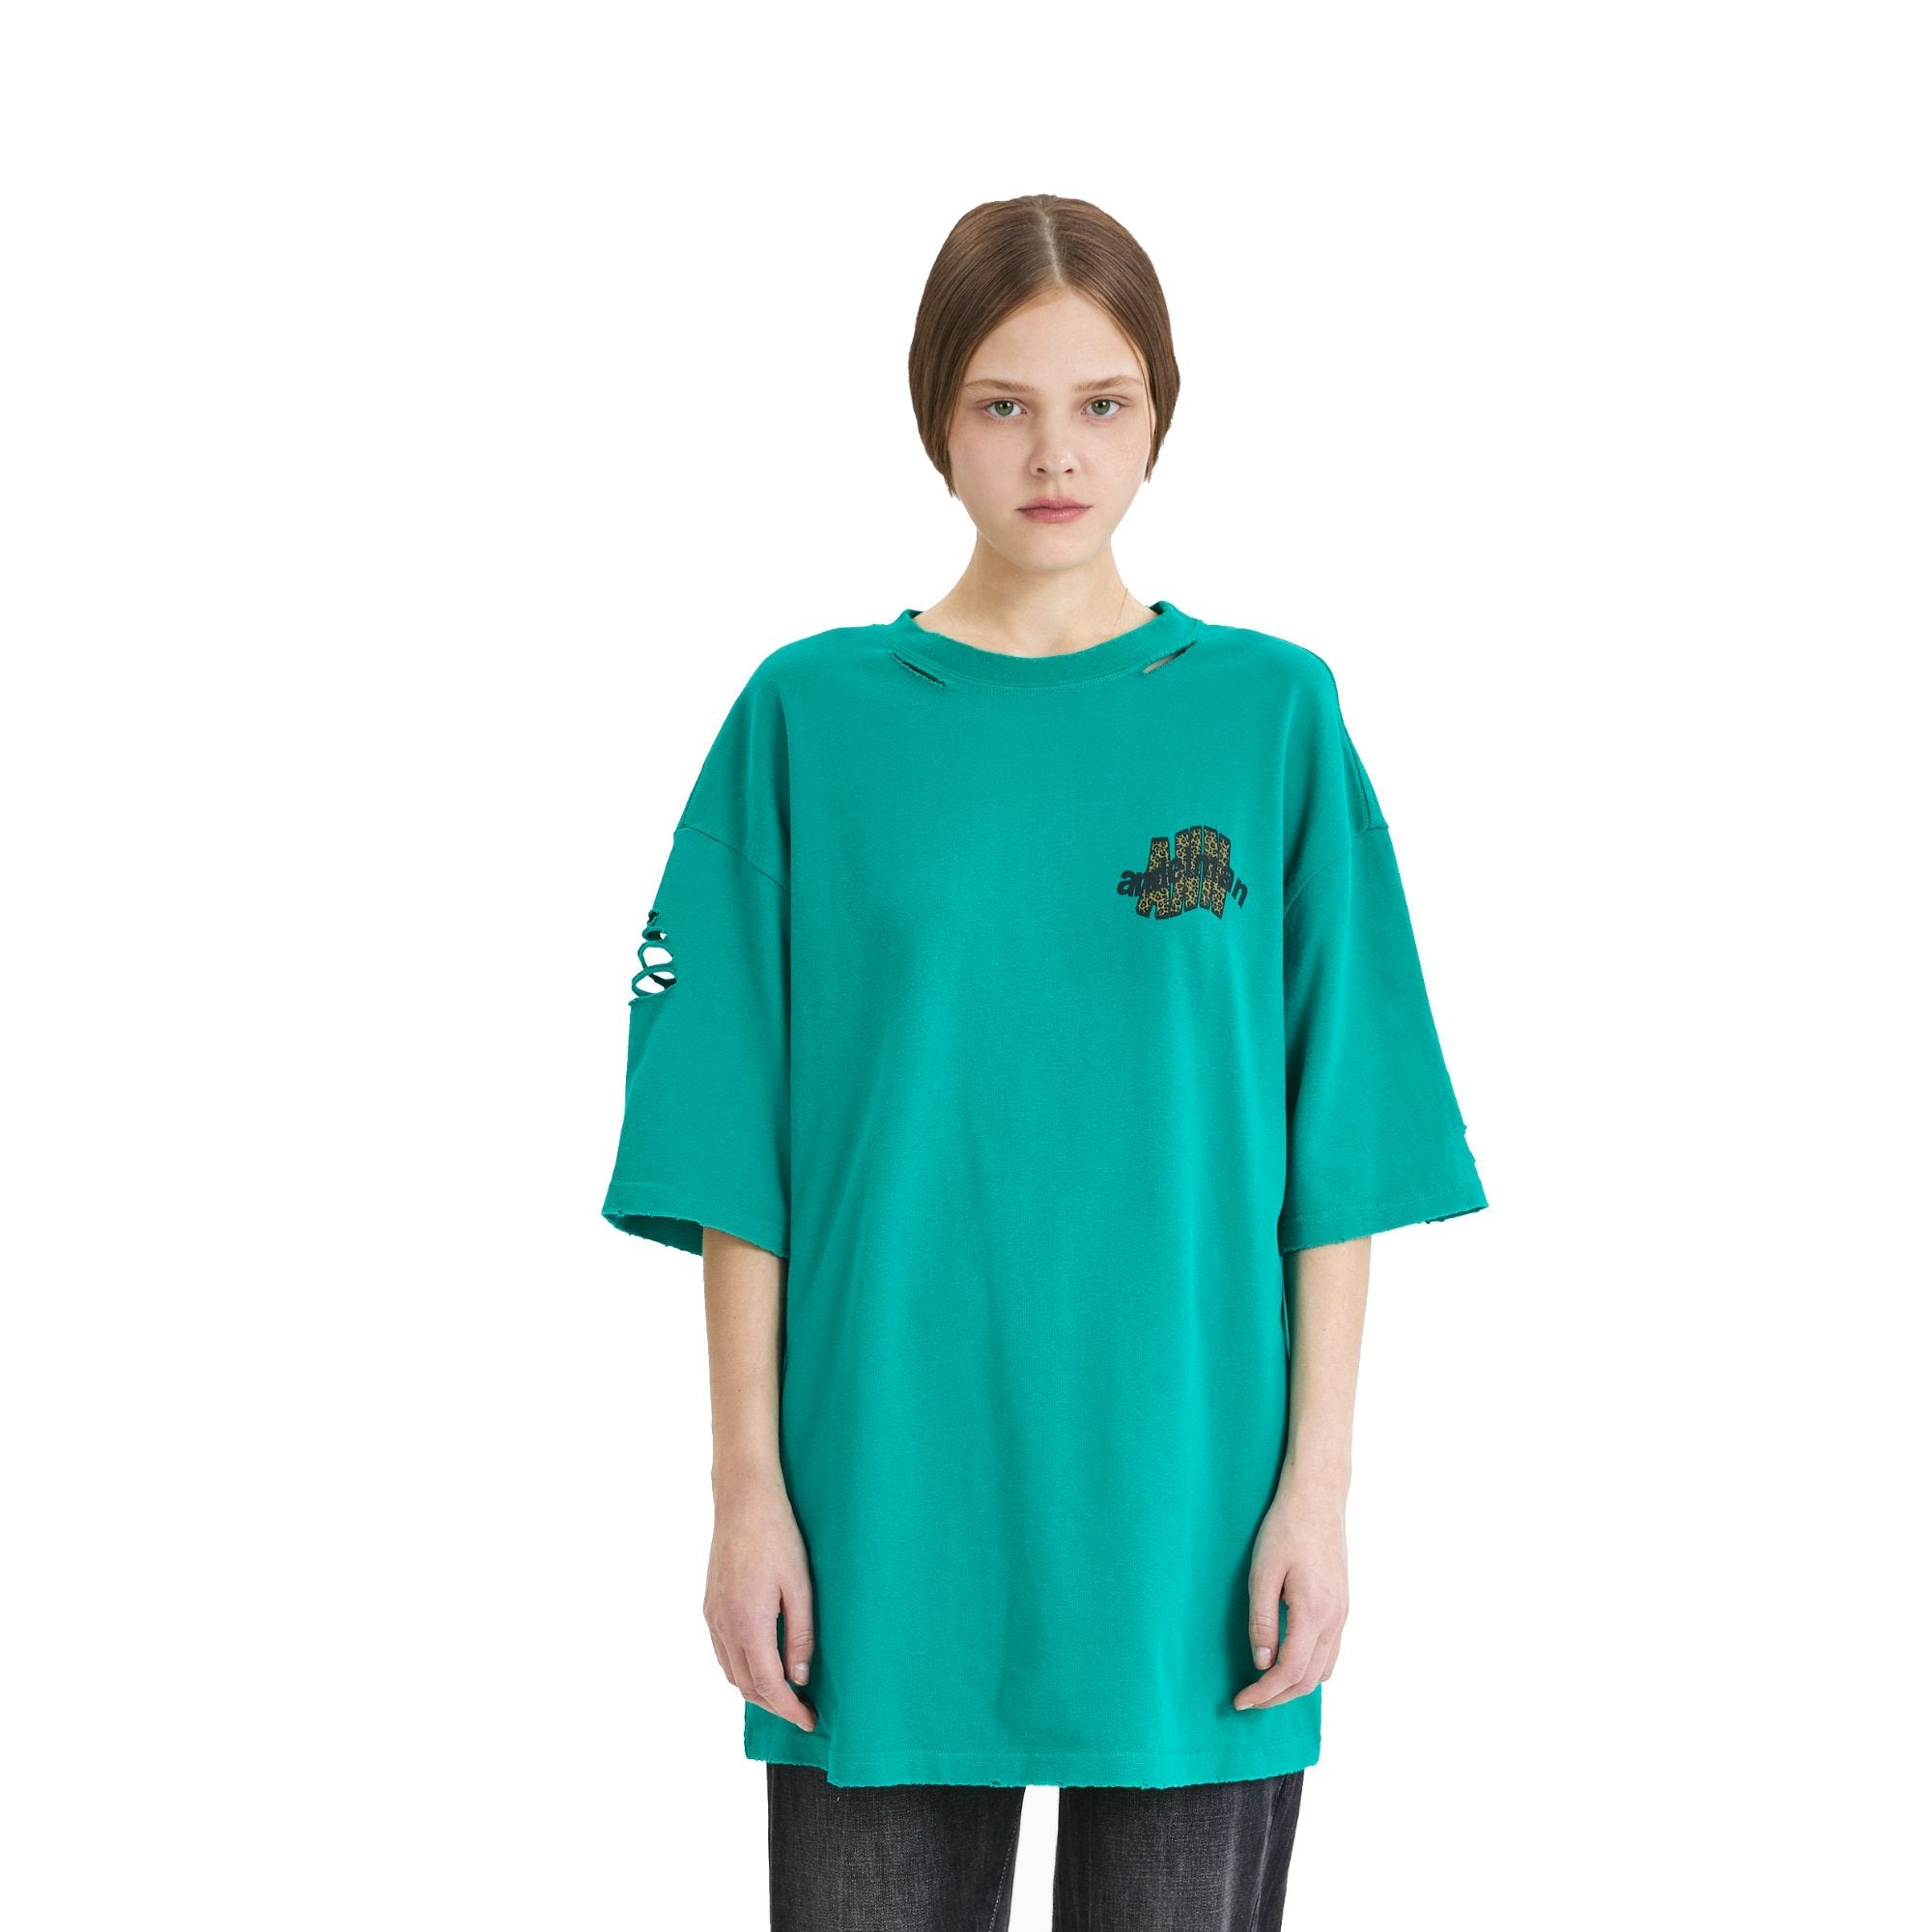 ANN ANDELMAN Leopard Logo Tee Green | MADA IN CHINA